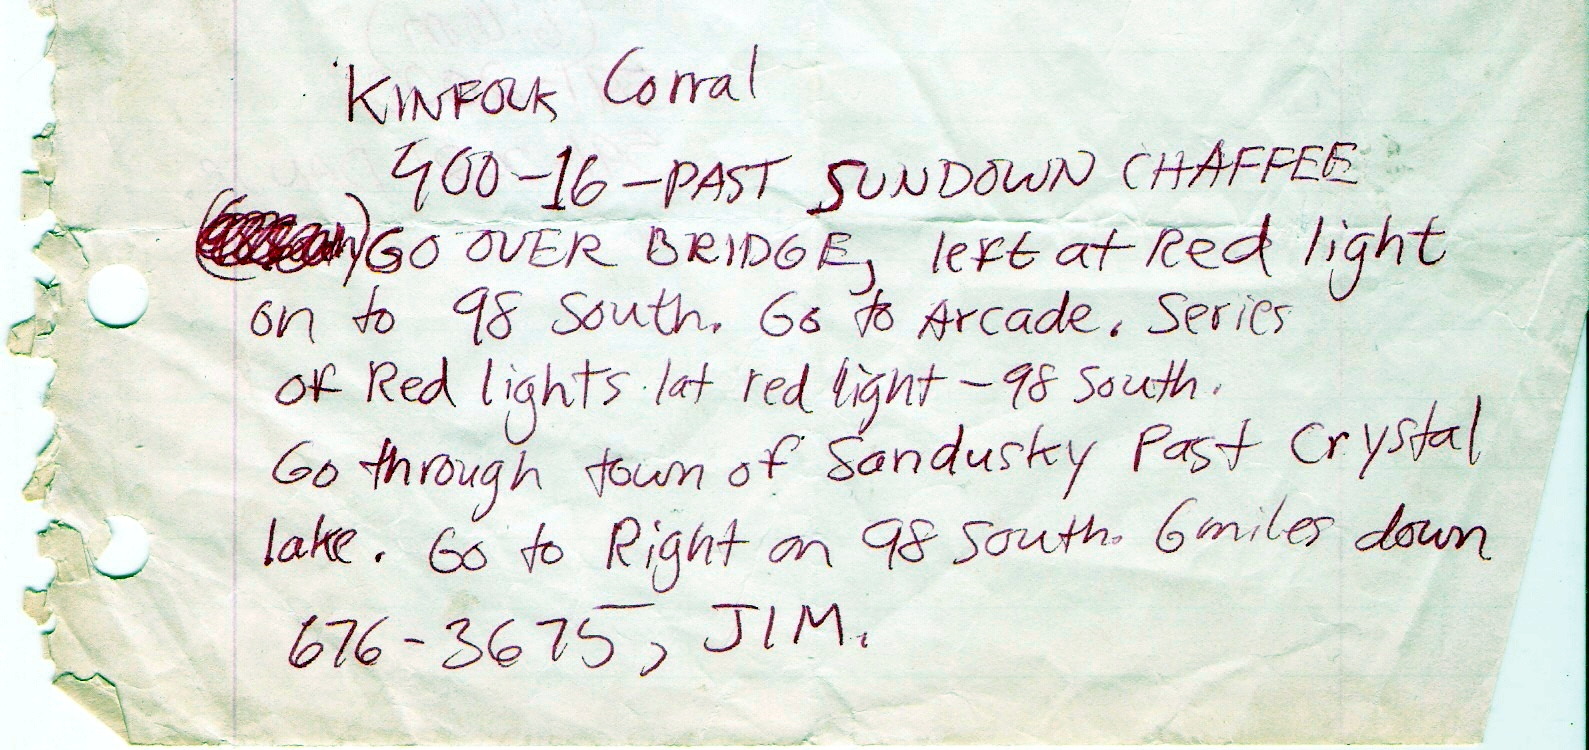 Directions to the Kinfolk Corral - Franklinville, NY